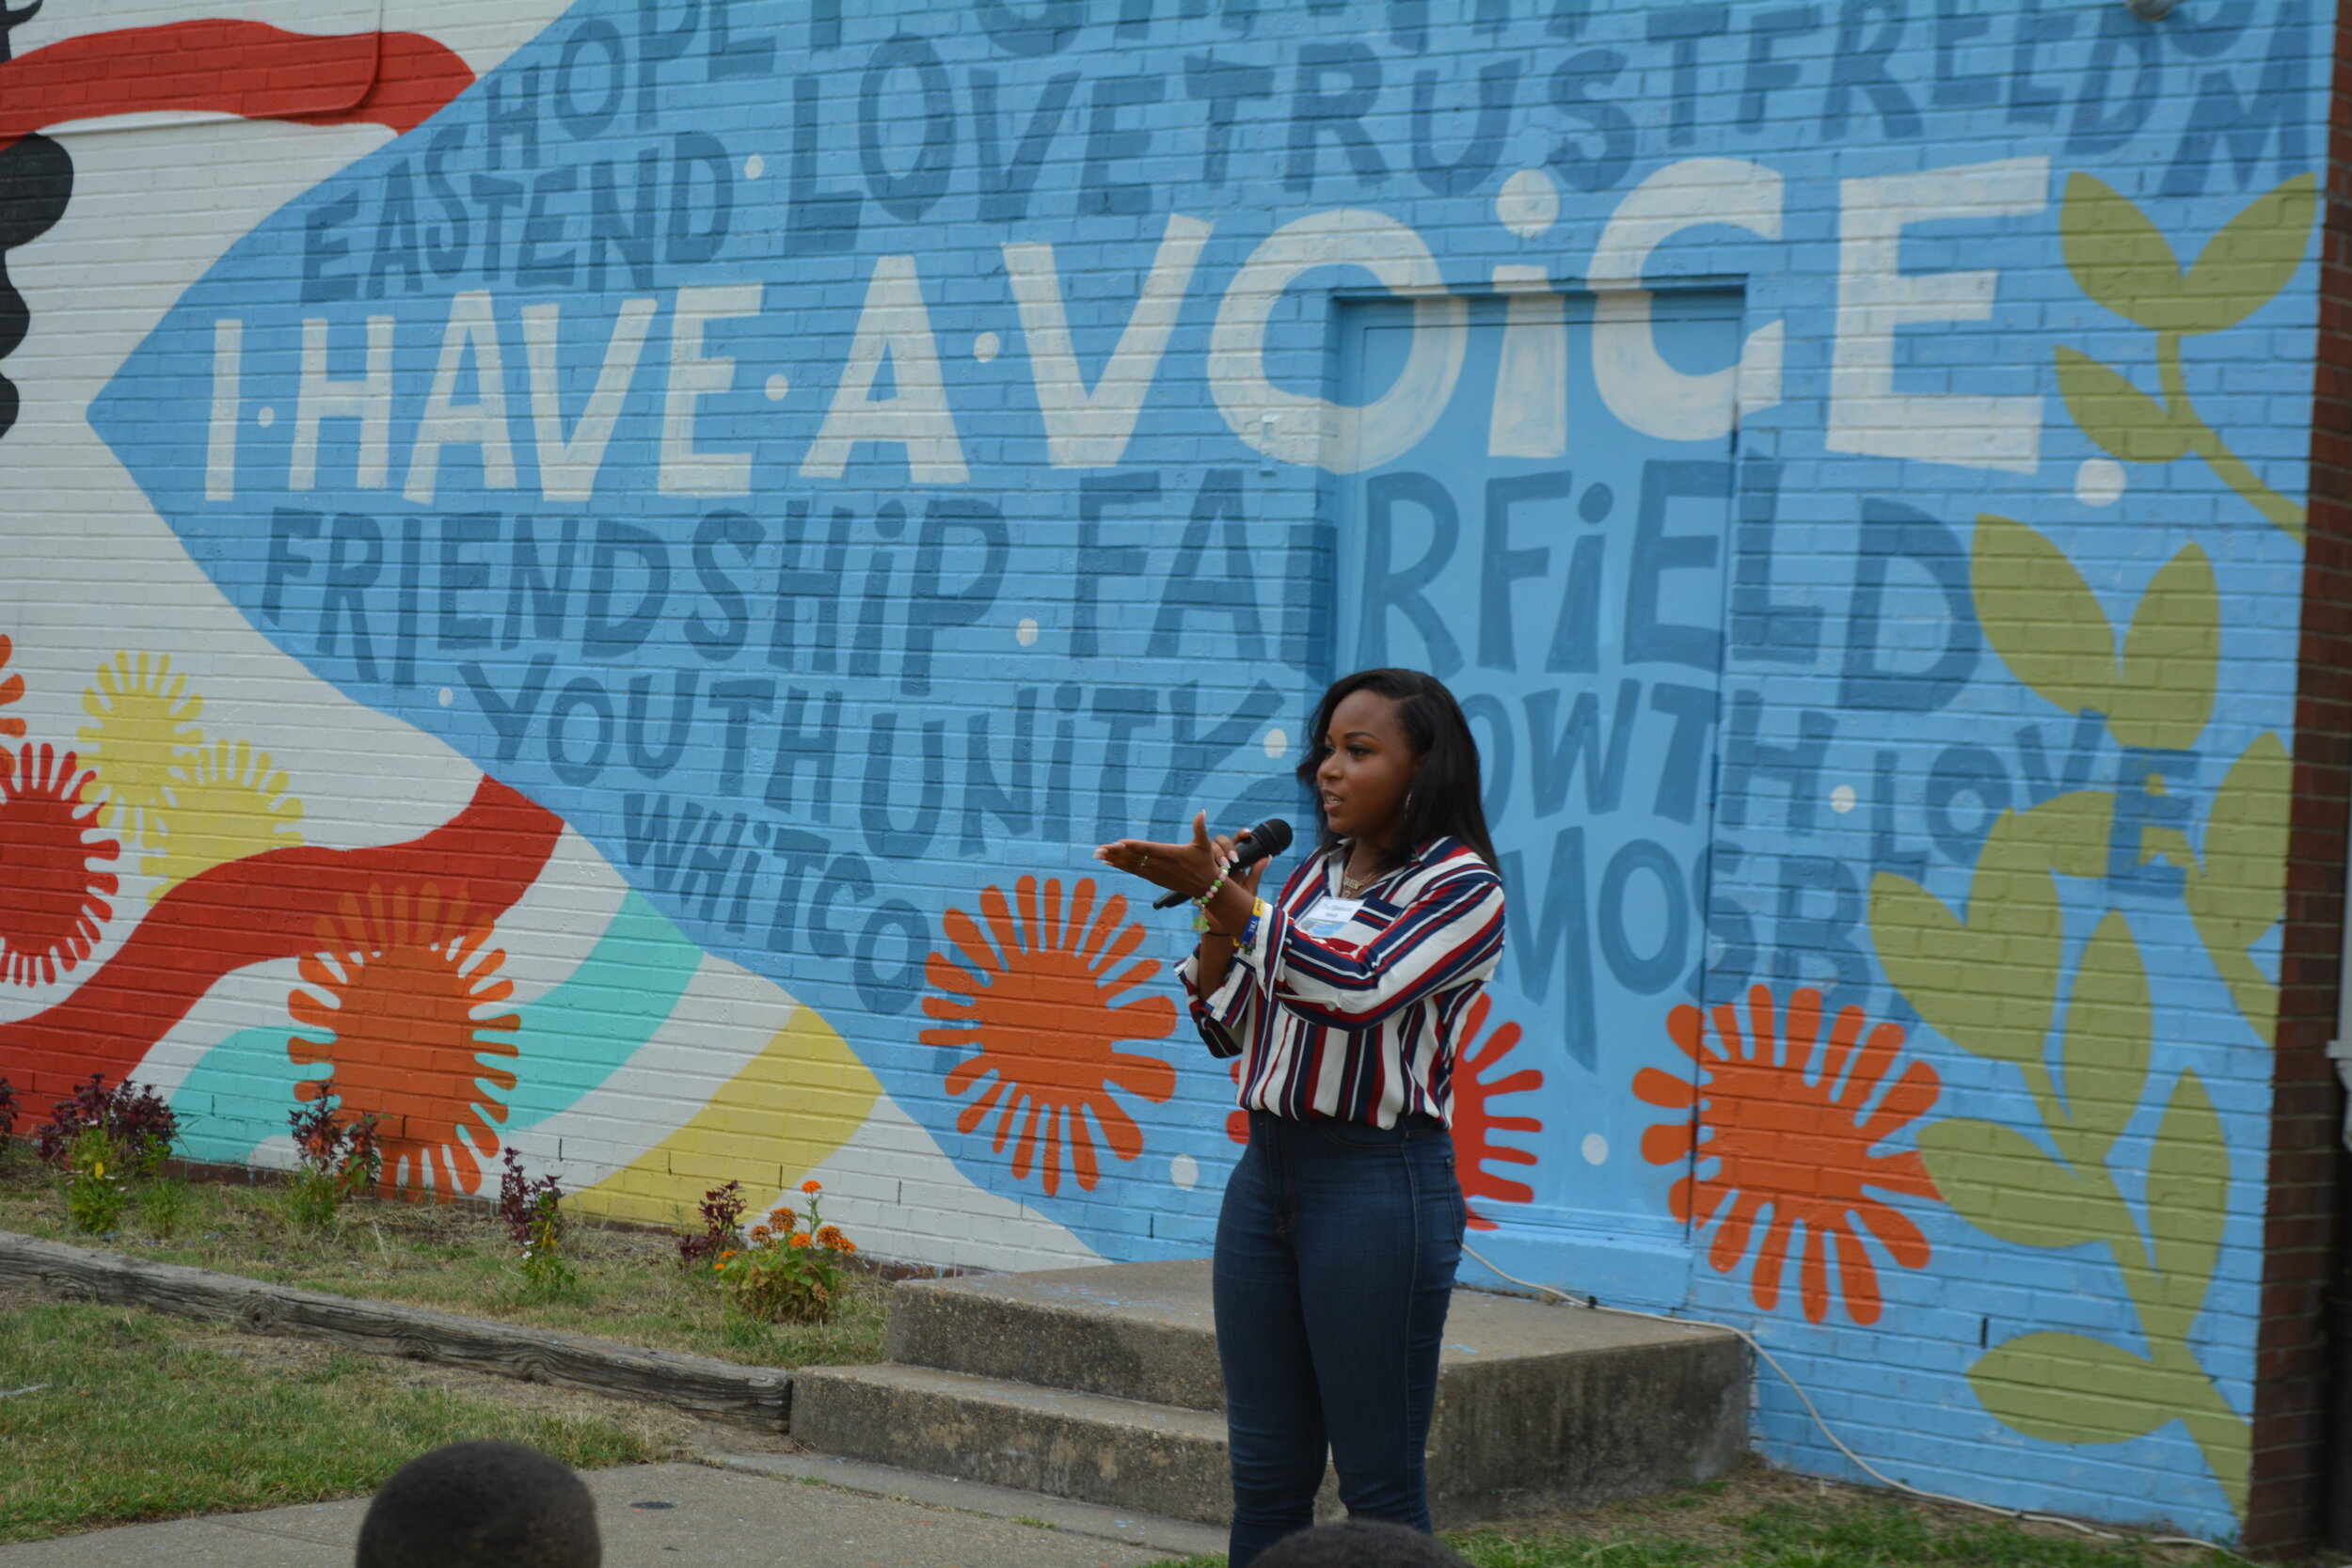 Tra'Shaundra Mealy, the 2014 BGCMR and Virginia Youth of the Year, talks about the impact the Club had on her life. Tra'Shaundra recently graduated from Virginia State University.